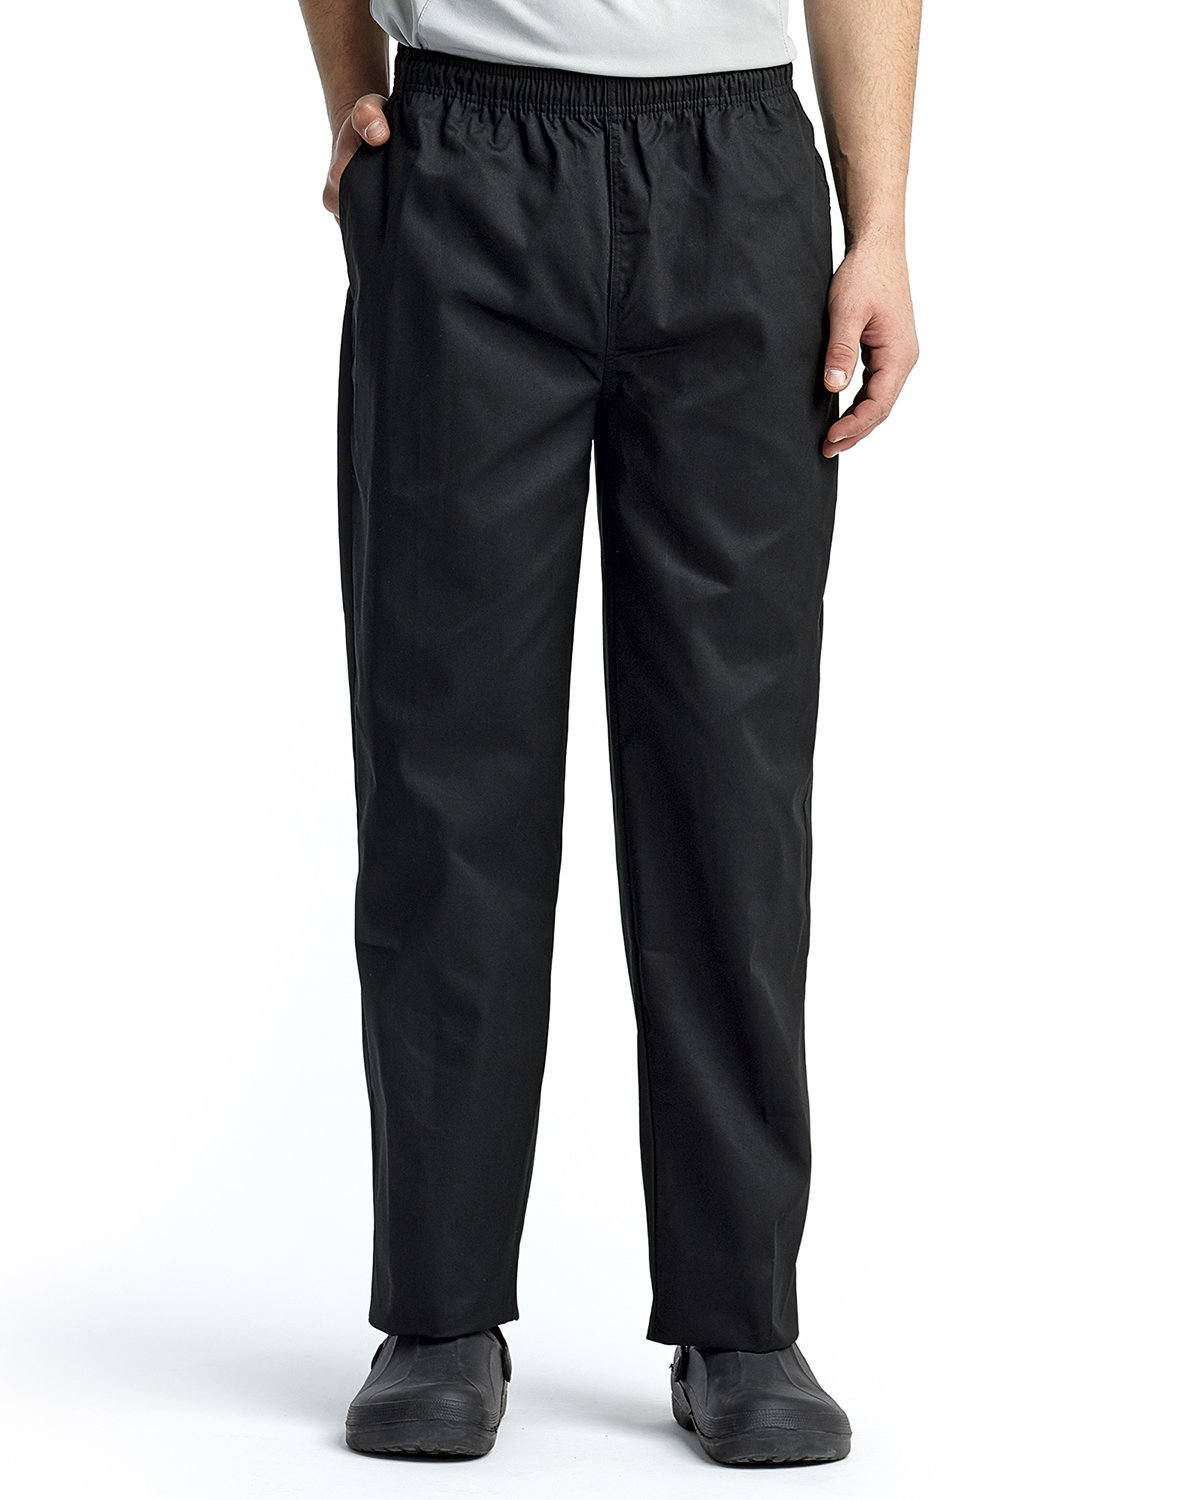 Artisan Collection by Reprime Unisex Essential Chef's Pant BLACK